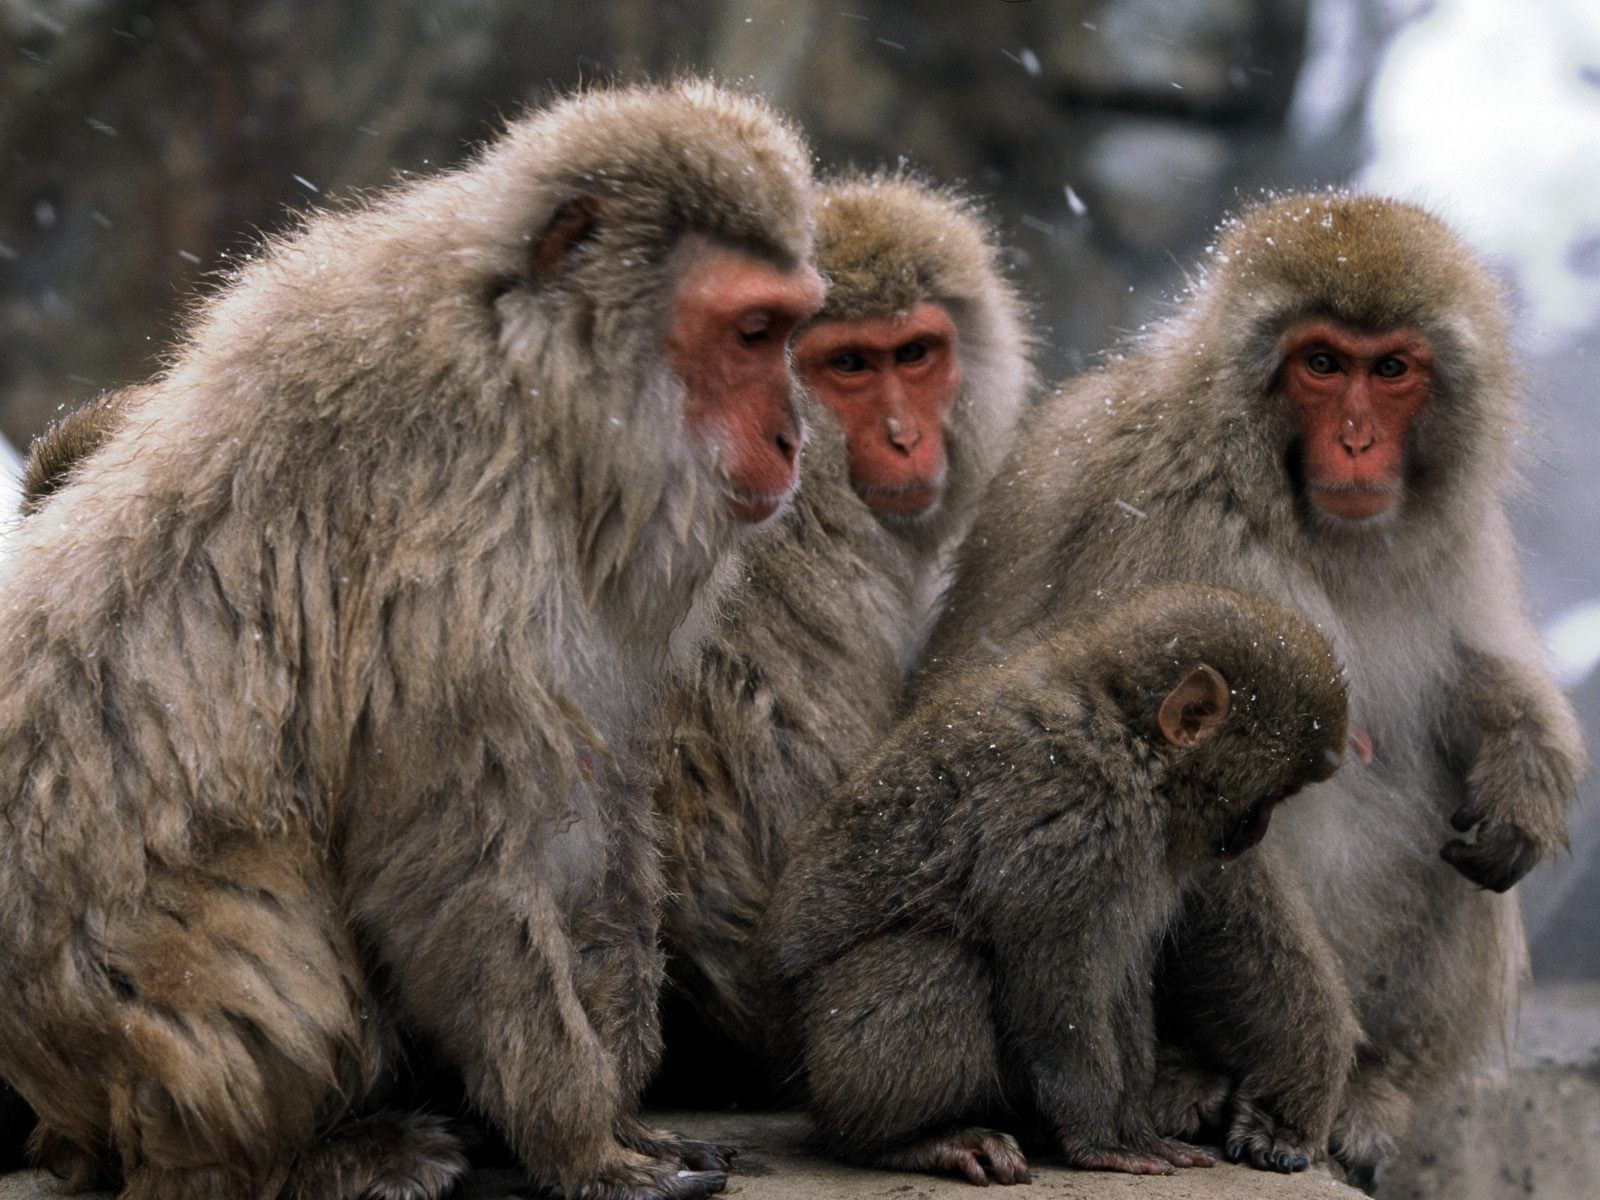 Monkey Images Download Posted By Ryan Mercado Images, Photos, Reviews